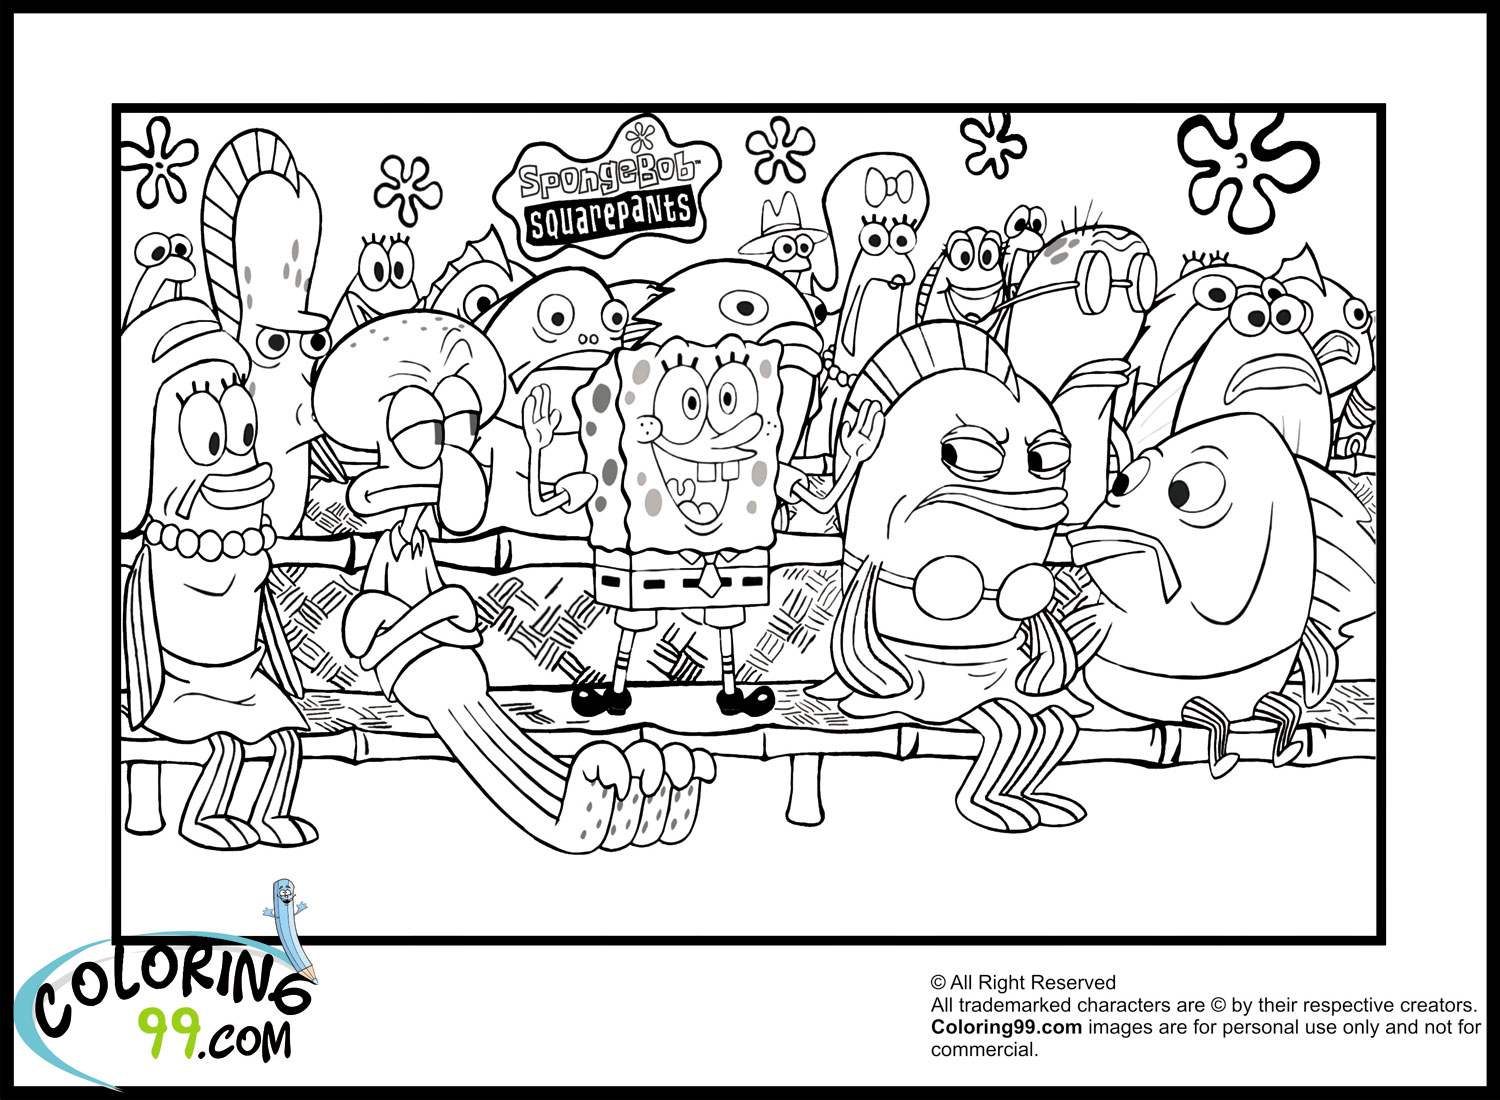 These Images Will Help You Understand The Words Spongebob House Coloring Pages In Detail All Found Global Network And Can Be Used Only